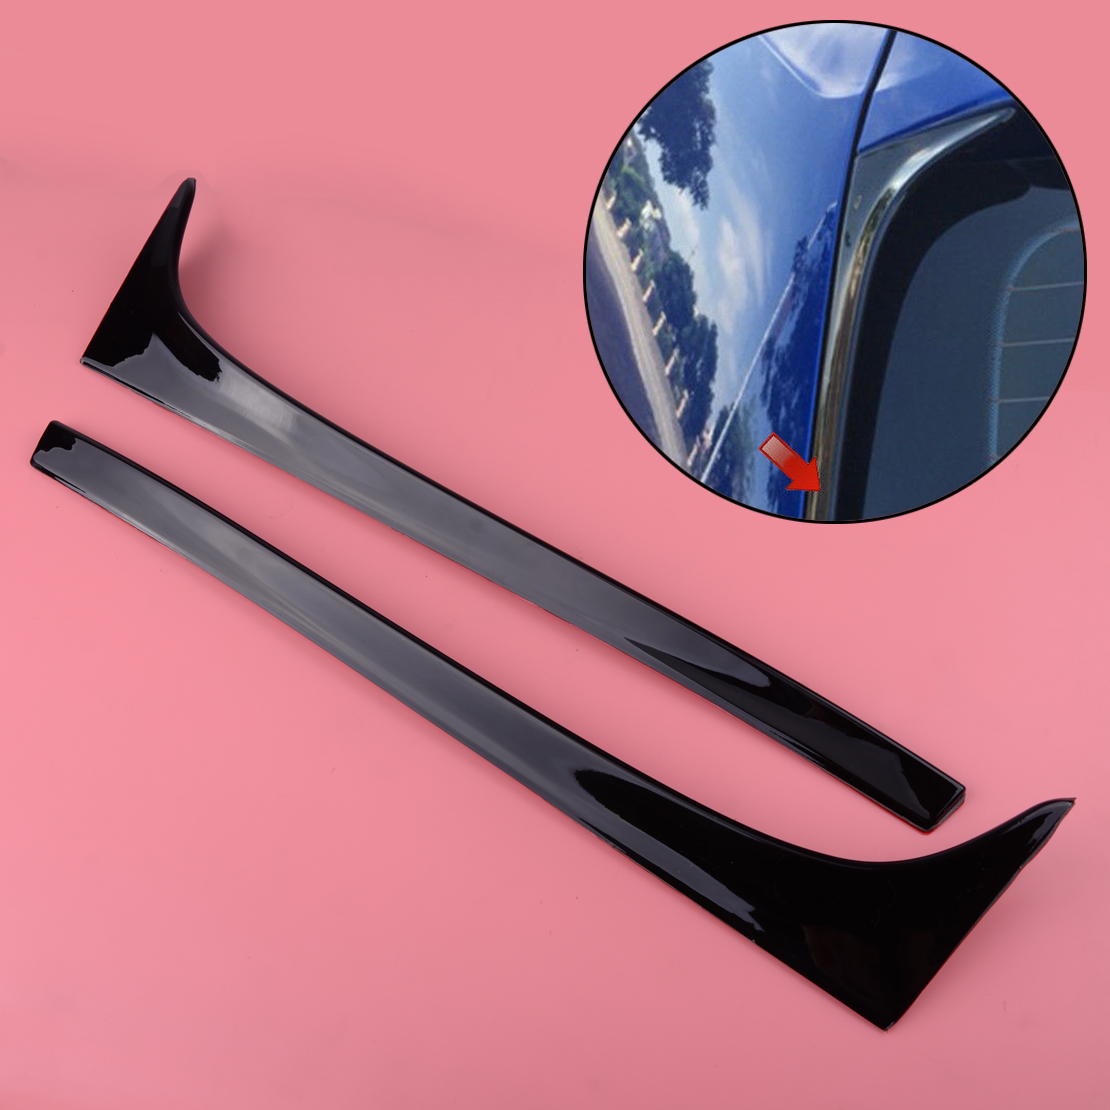 DWCX 2Pcs Car Plastic Rear Window Side Spoiler Wing Fit For VW <font><b>GOLF</b></font> MK7 MK7.5 <font><b>R</b></font> GTE GTD image